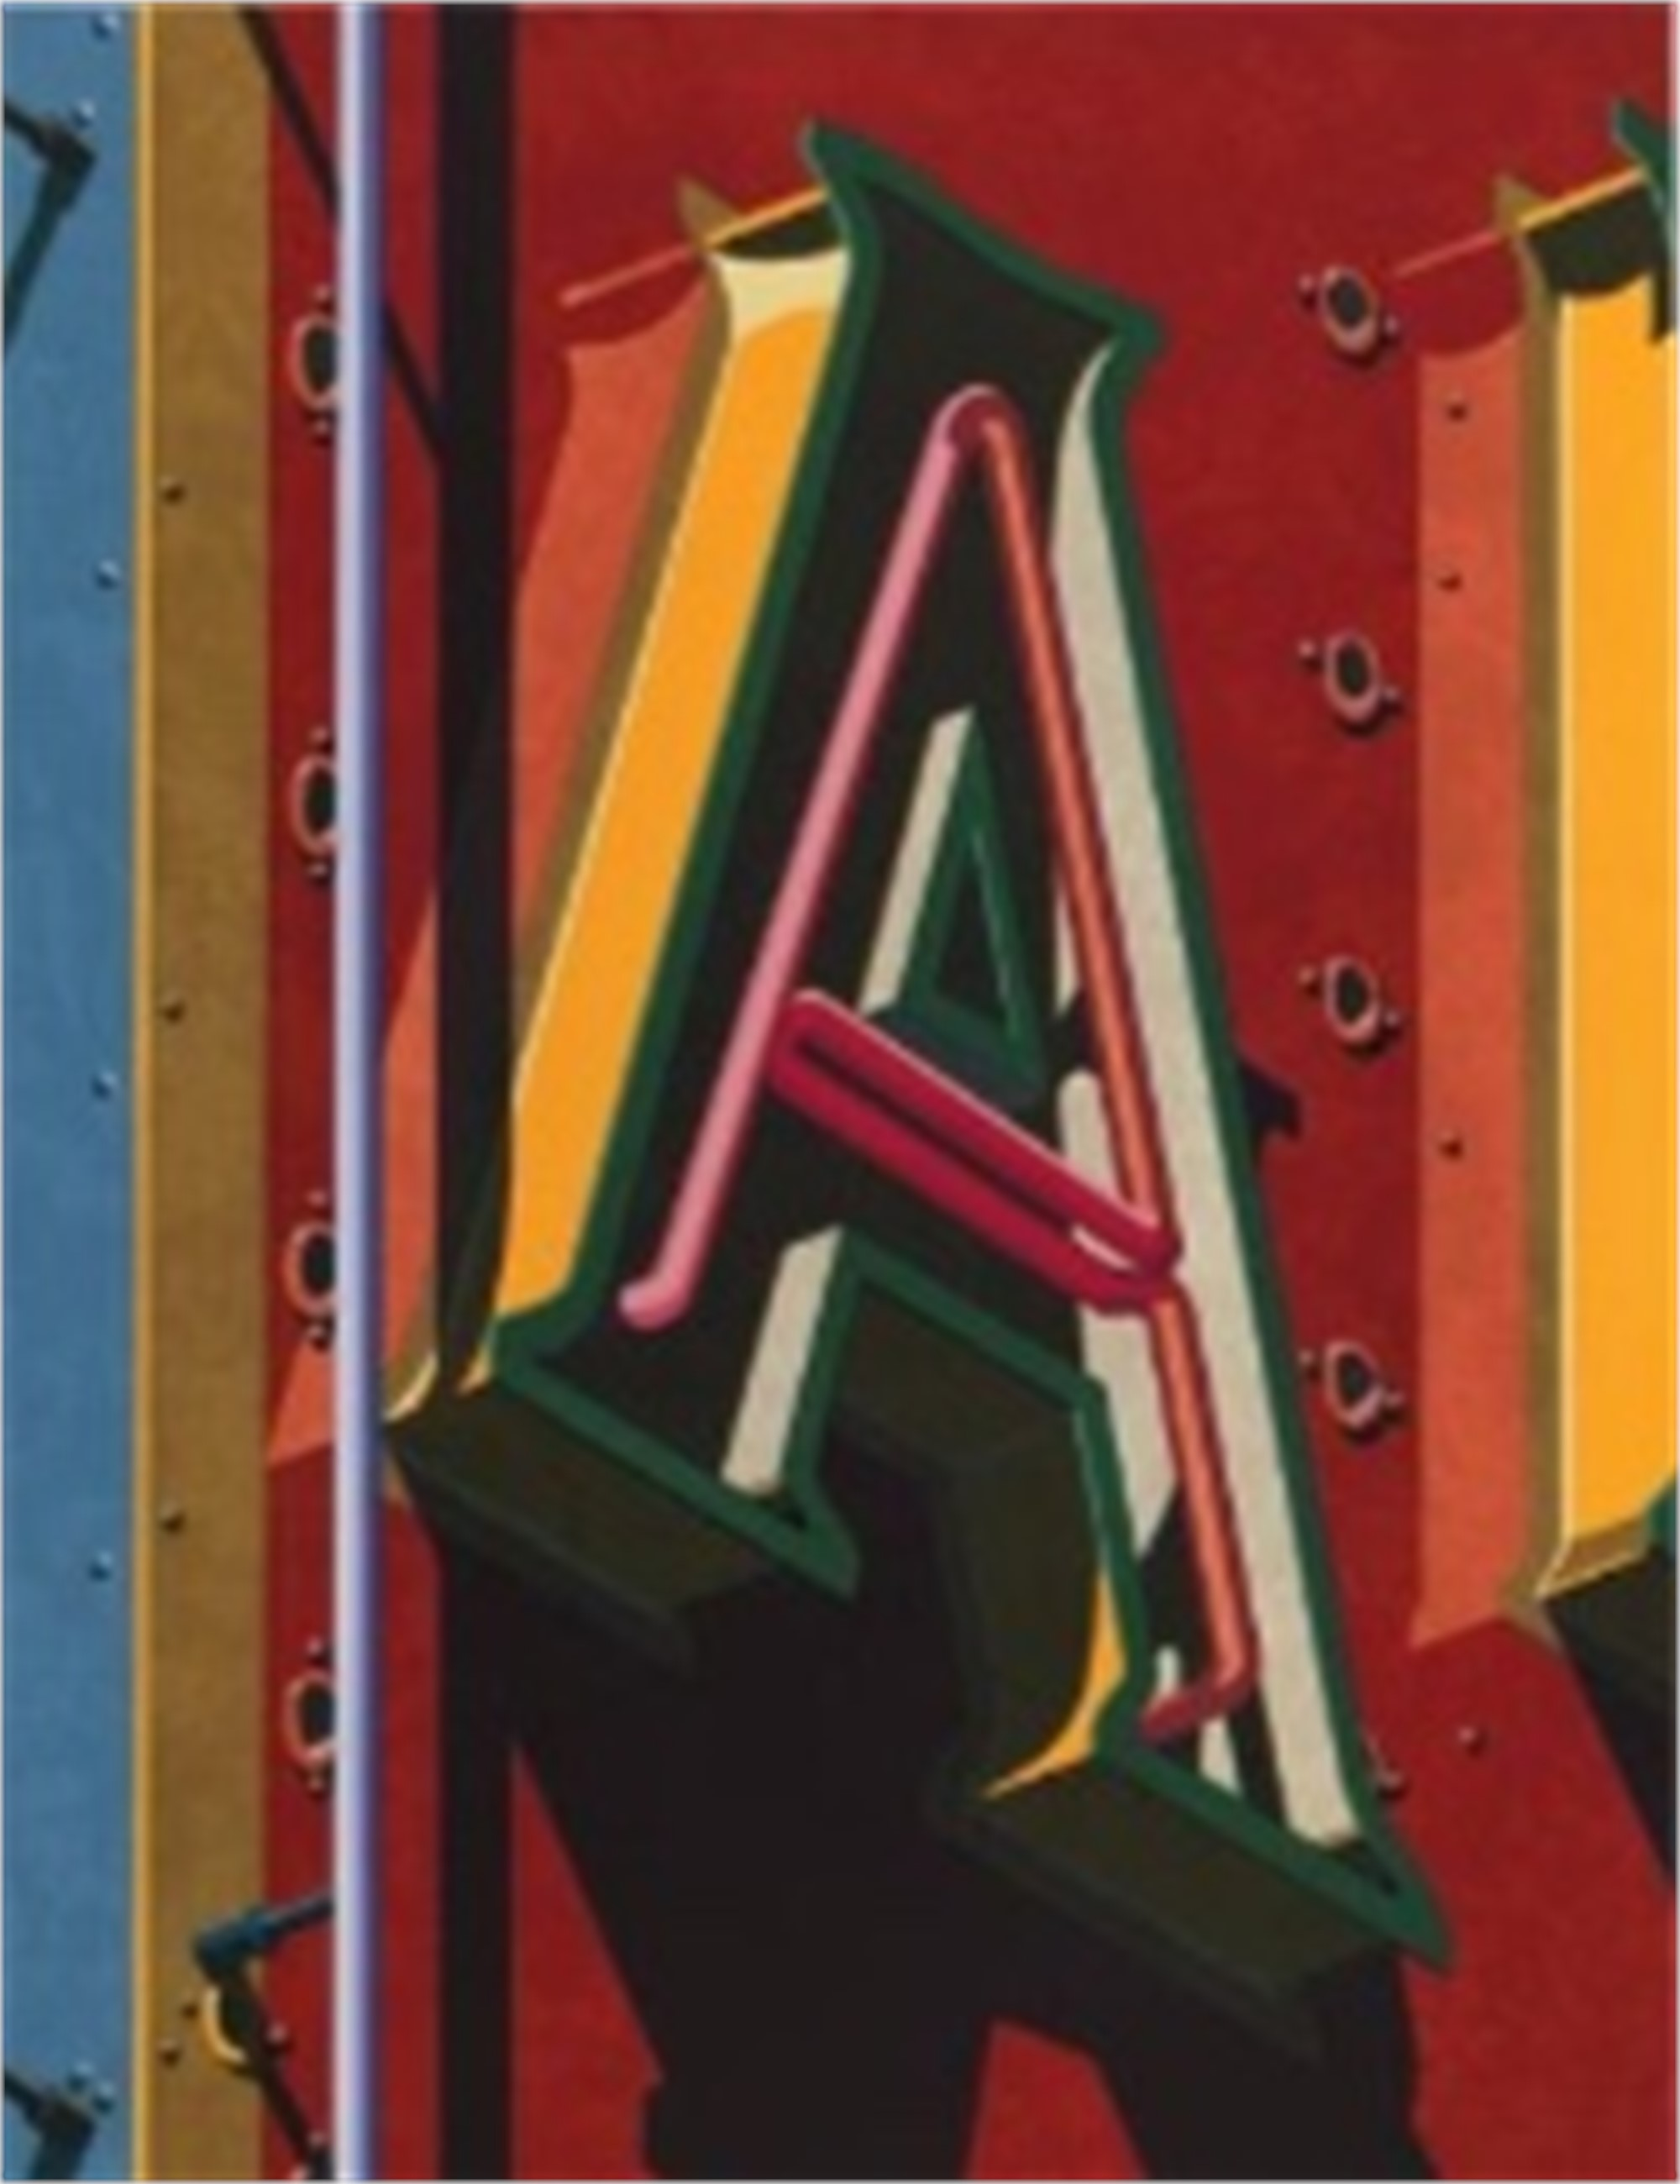 An American Alphabet: A by Robert Cottingham